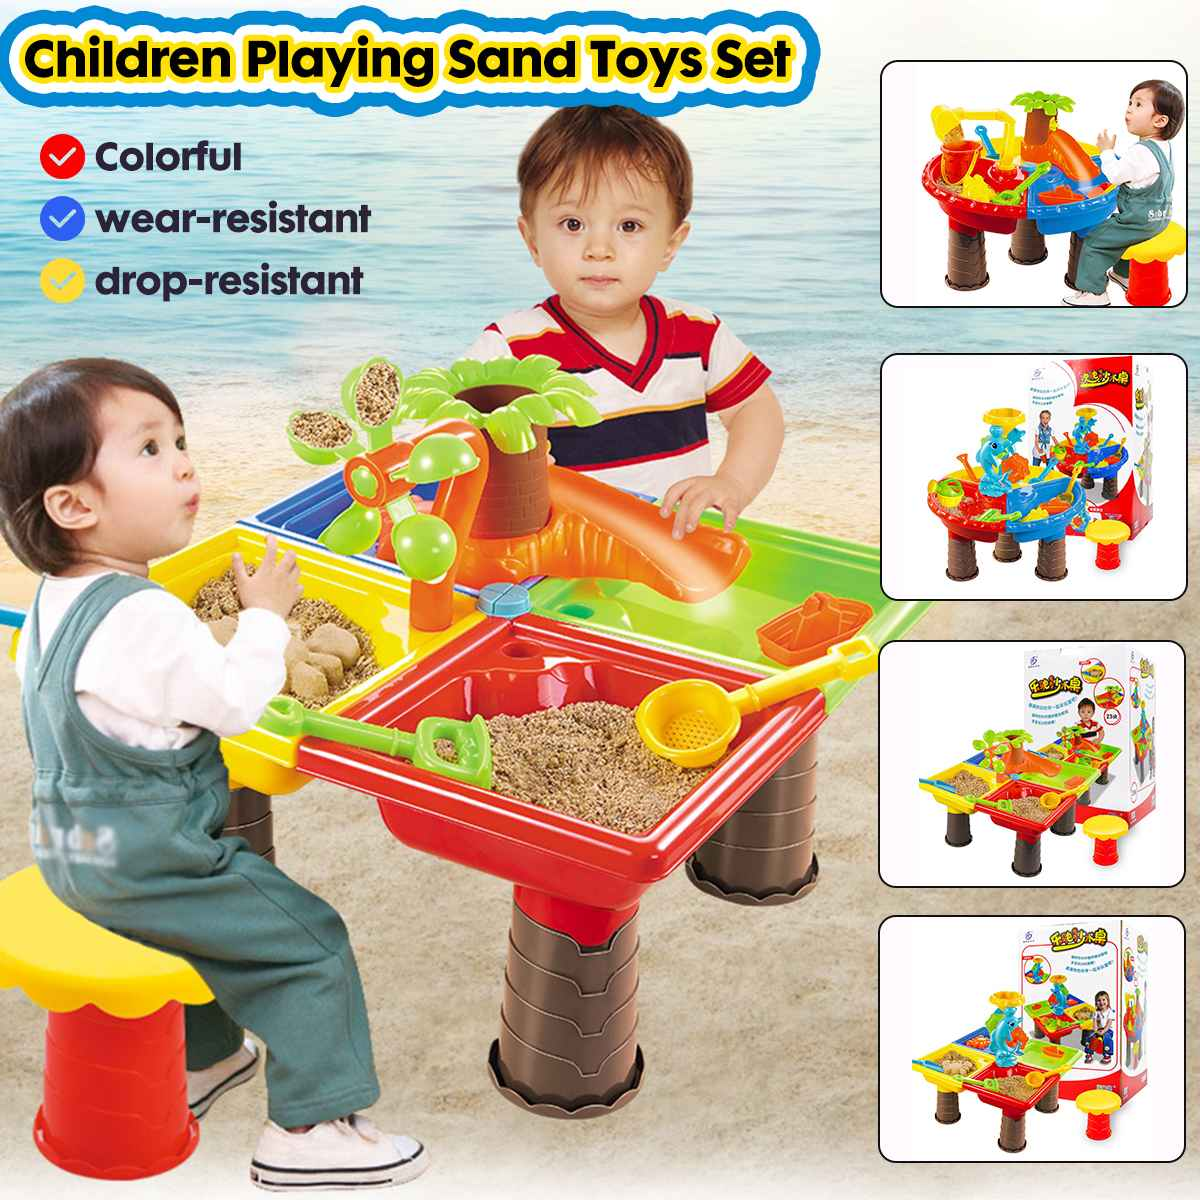 Beach Toys For Kids Full Set Baby Beach Game Children Summer Toys For Beach Paly Sand Water Play Desk At Home, Beach, Ect.